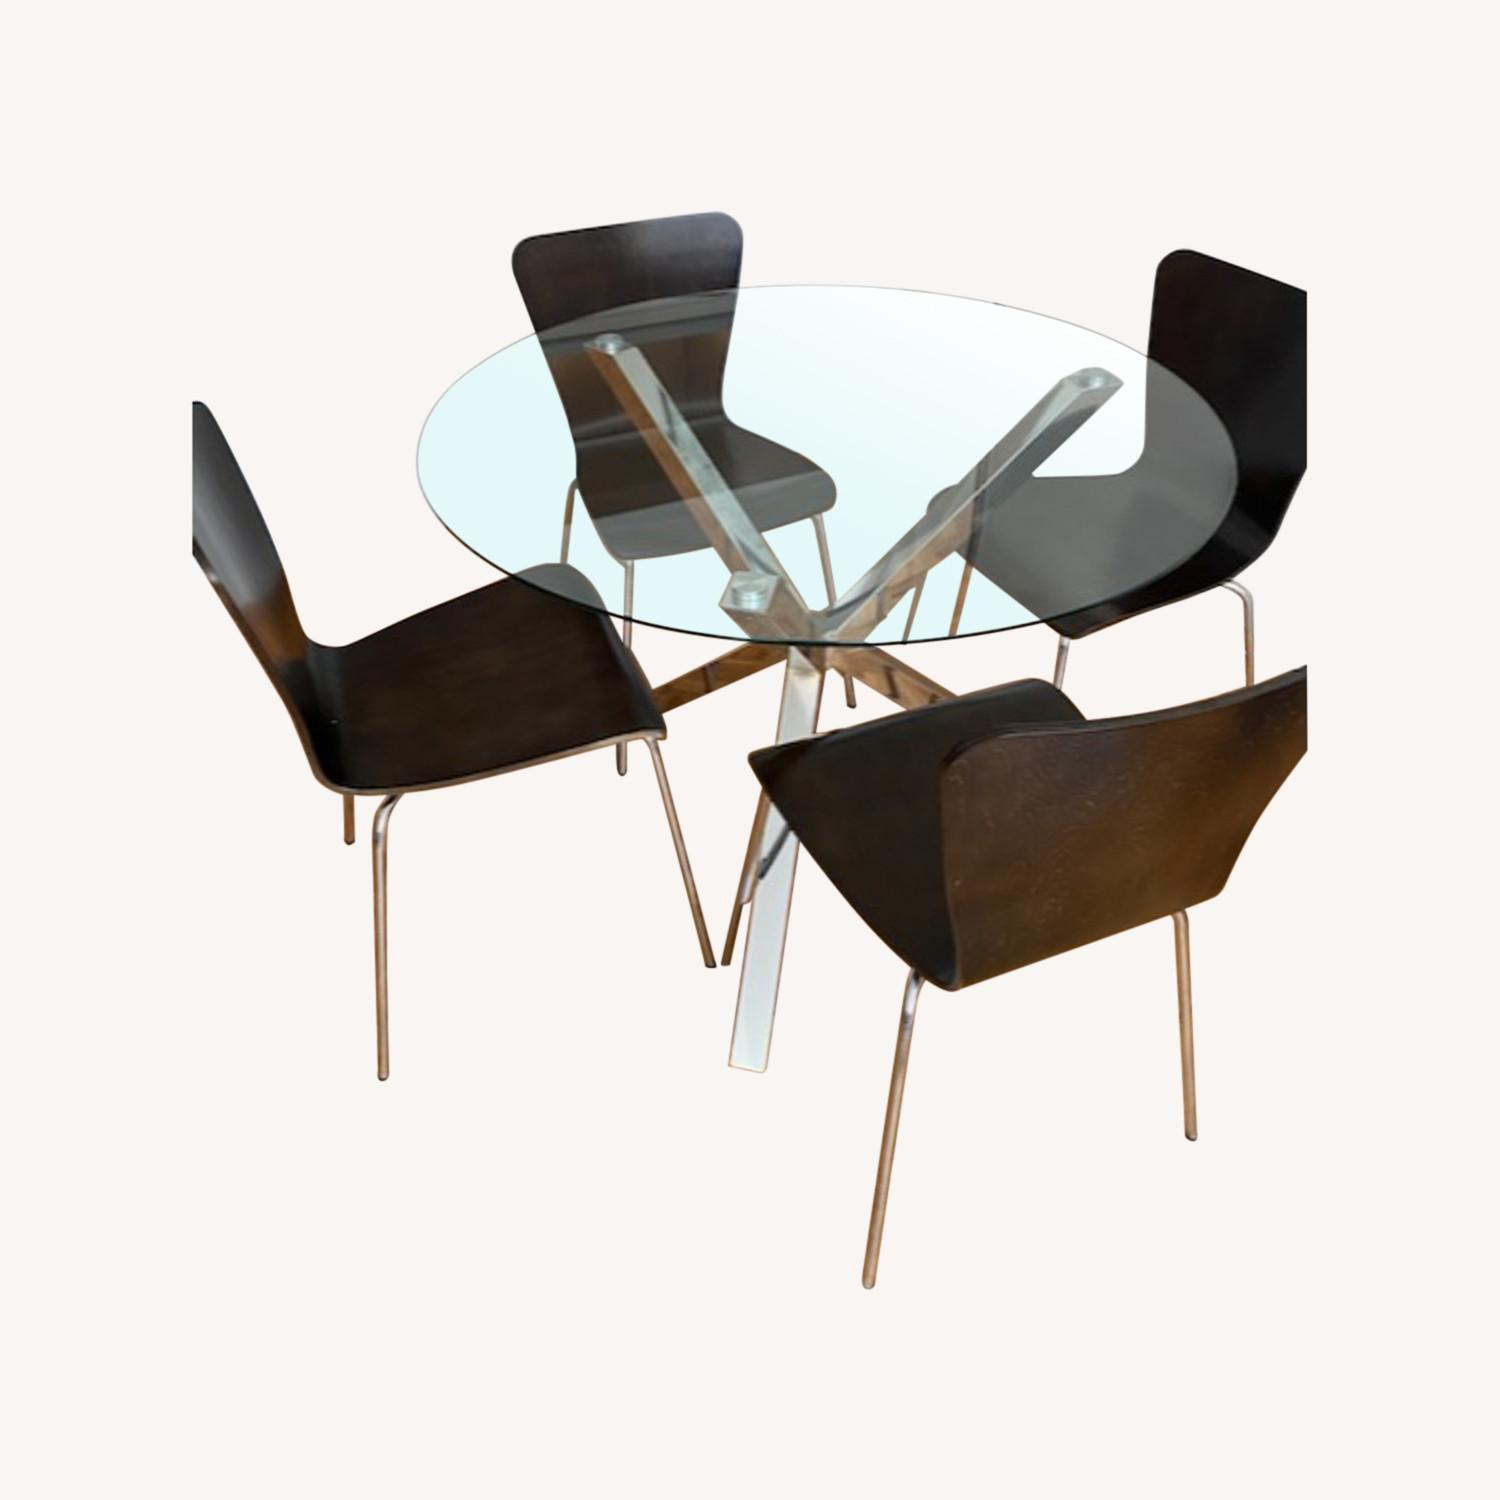 Chrome & Glass Dining Table with 4 Chairs - image-0